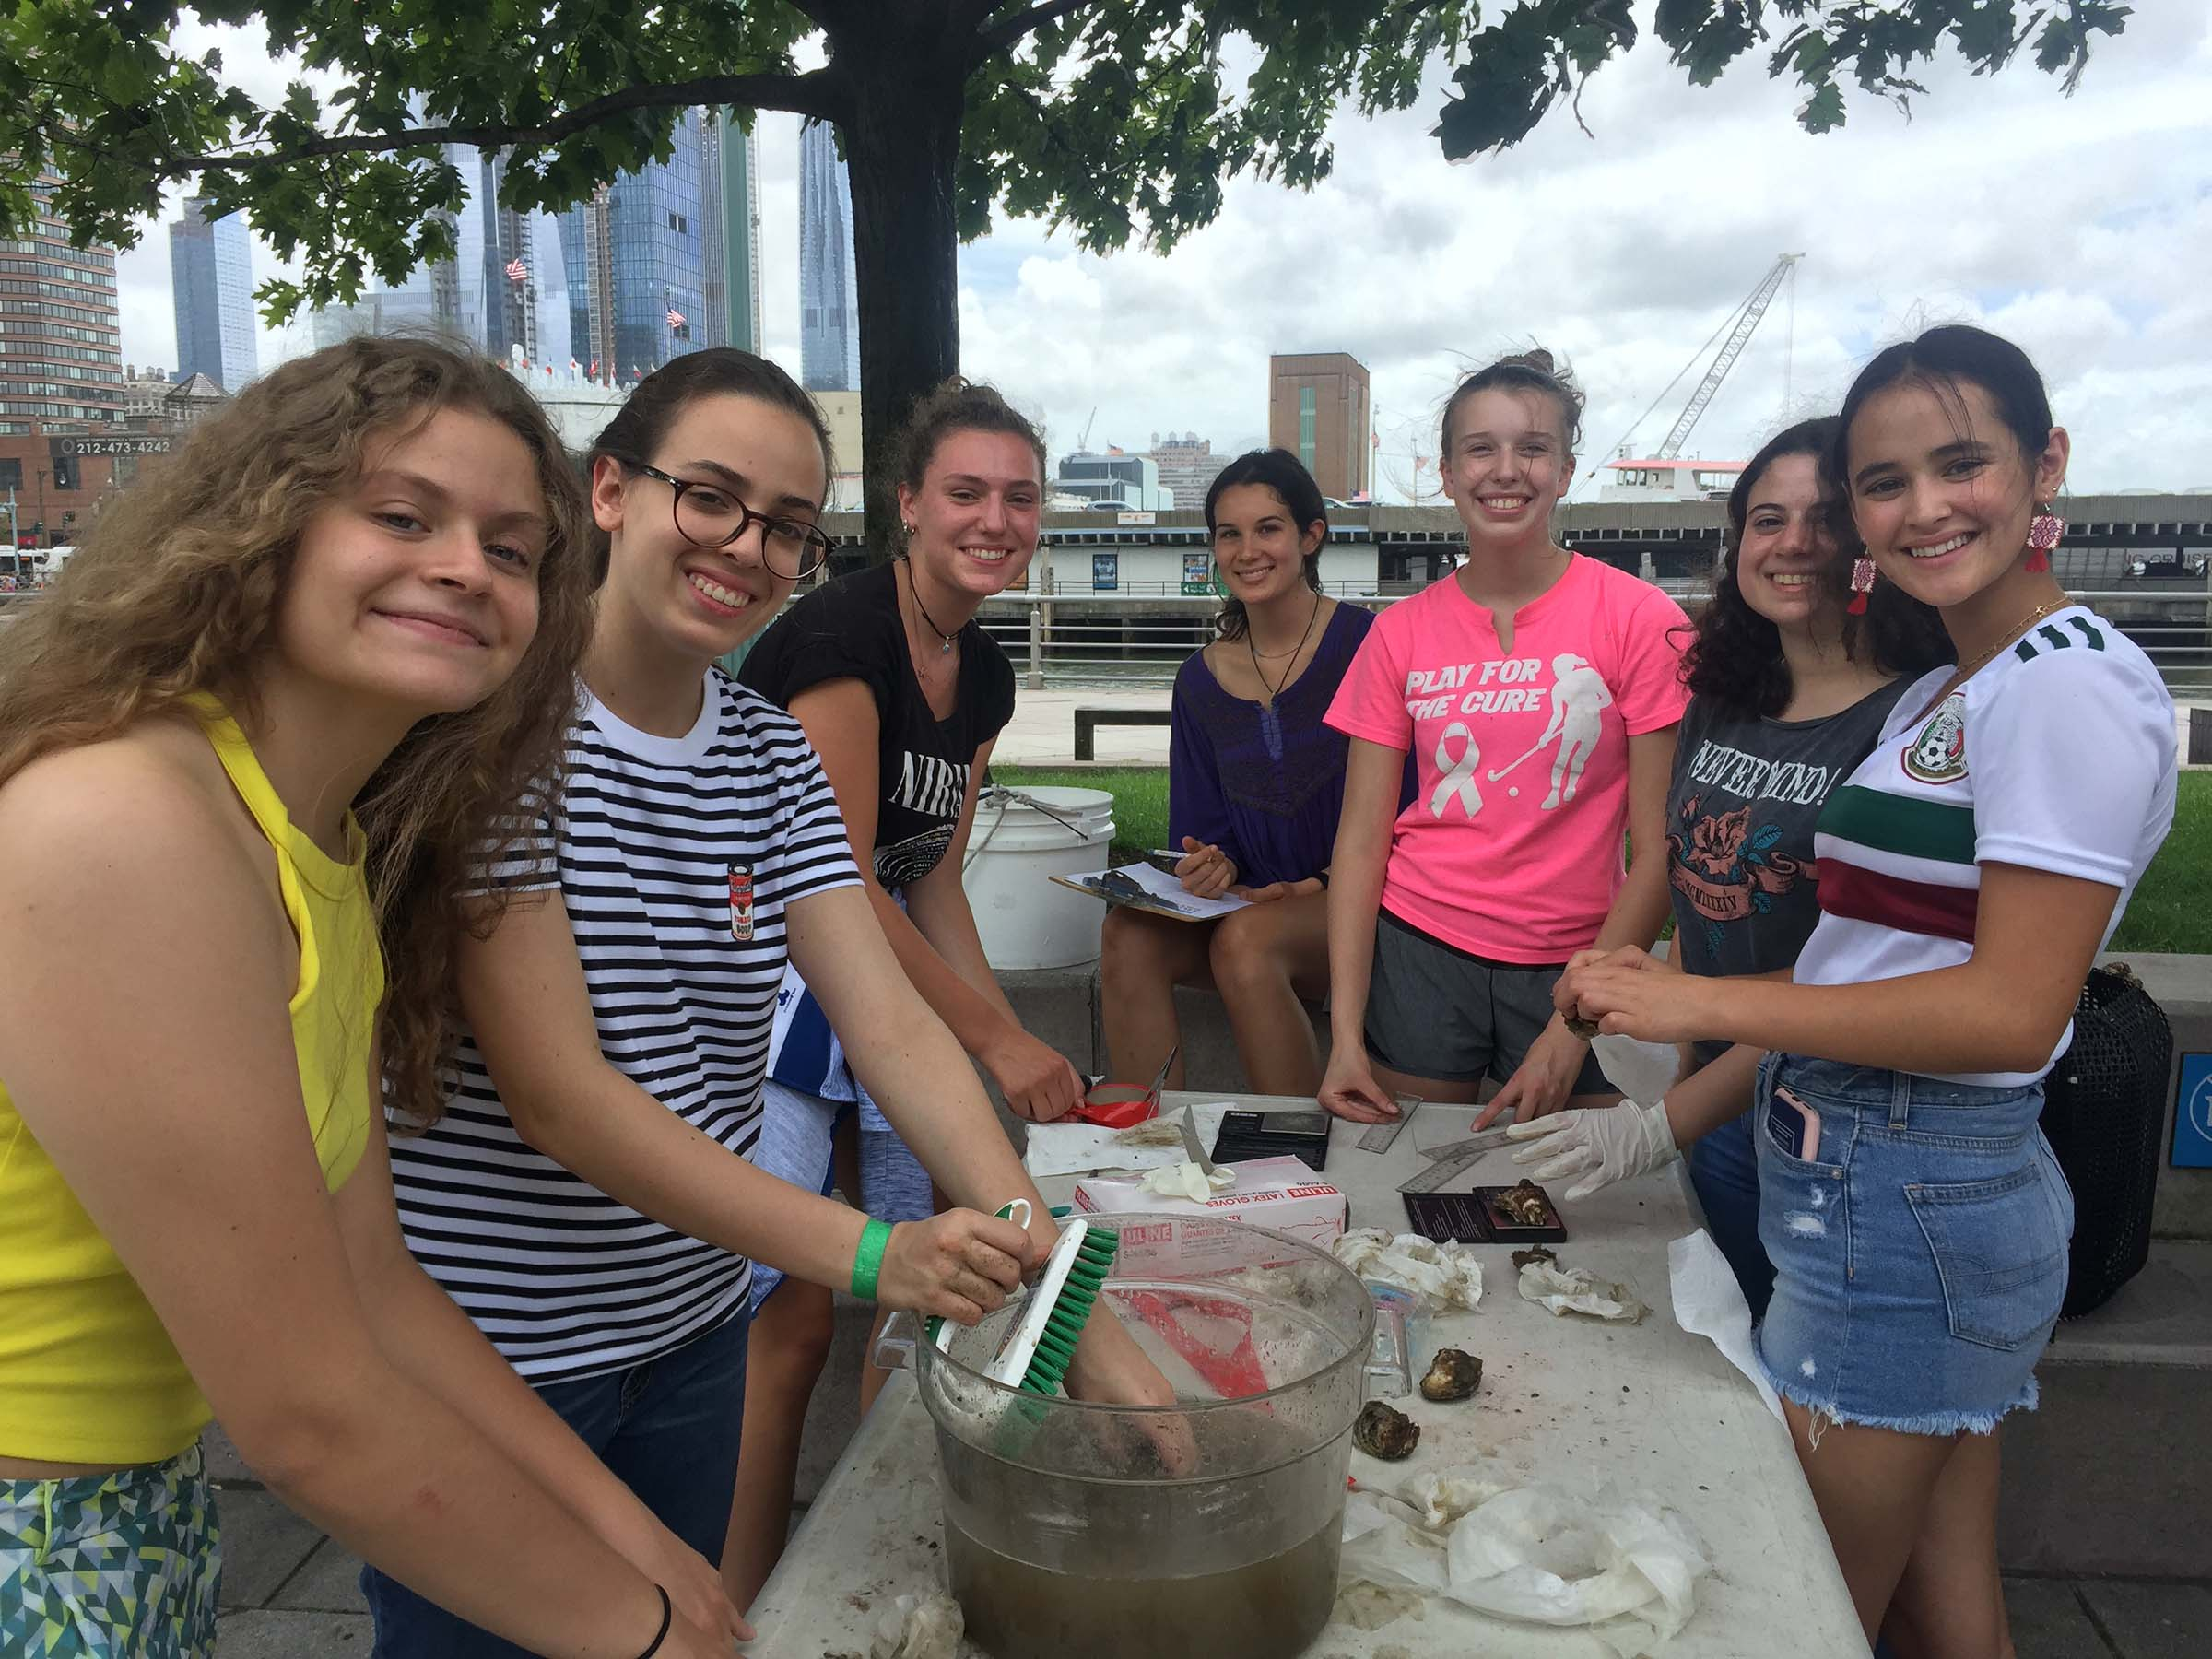 Students learn about Oyster ecology